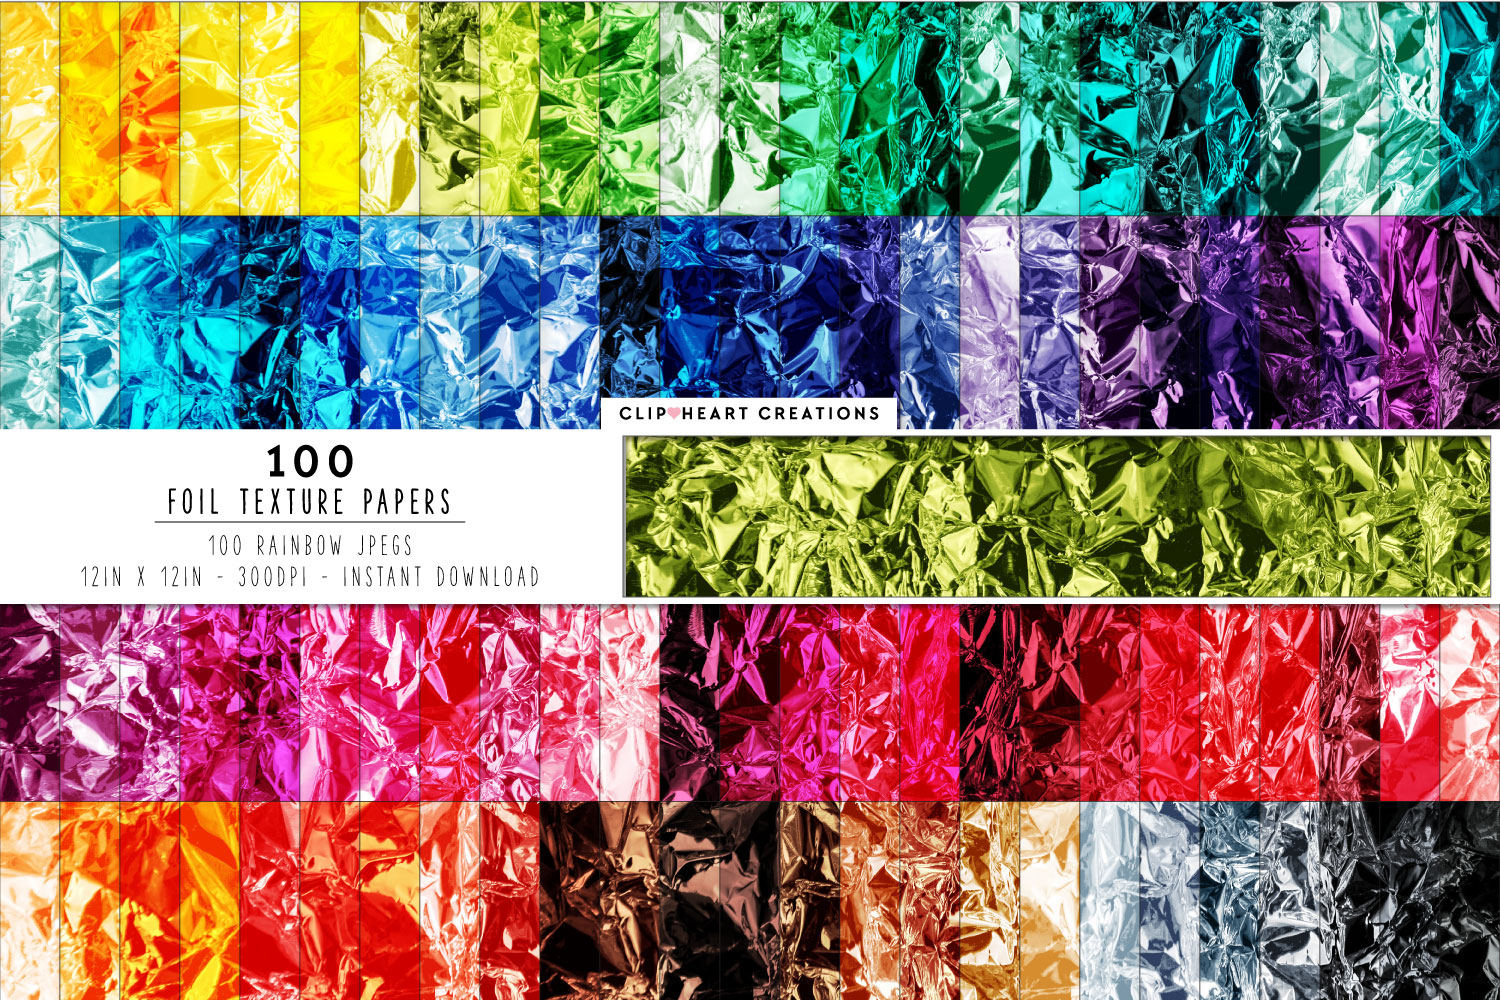 Download Free 100 Crumpled Foil Digital Paper Textures Graphic By Clipheartcreations Creative Fabrica for Cricut Explore, Silhouette and other cutting machines.